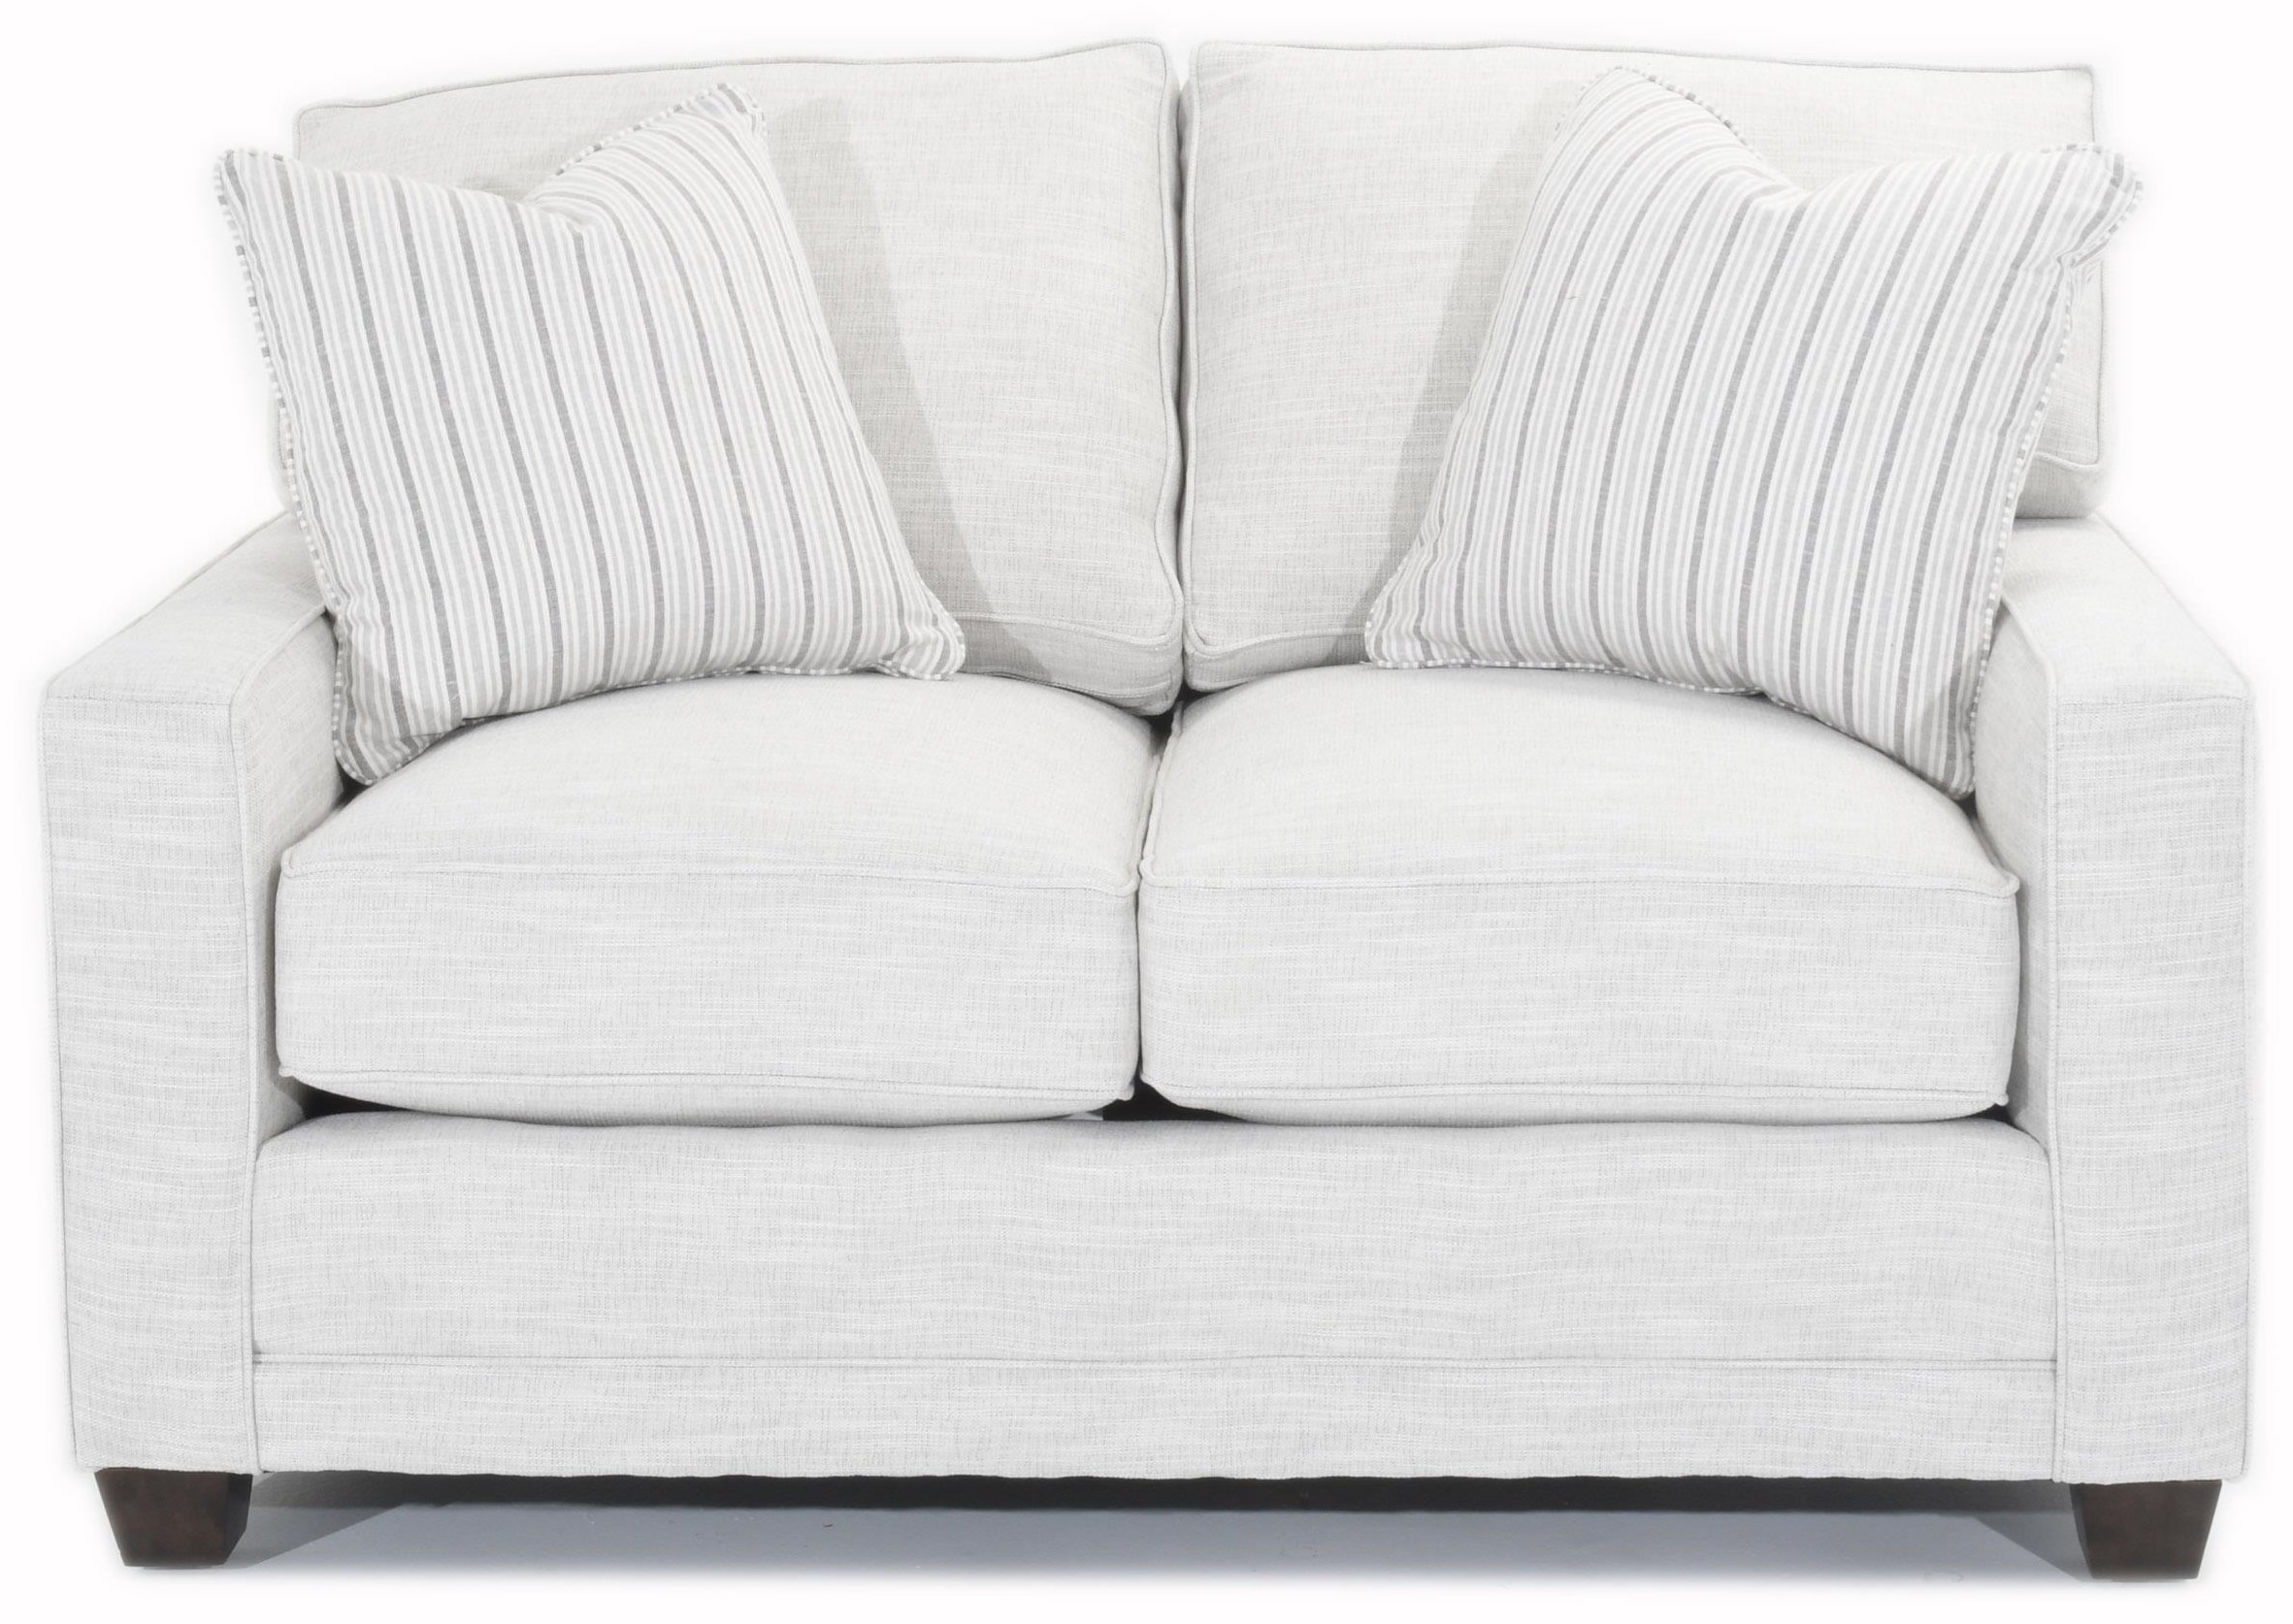 My Style I Customizable Loveseat by Rowe at Baer's Furniture